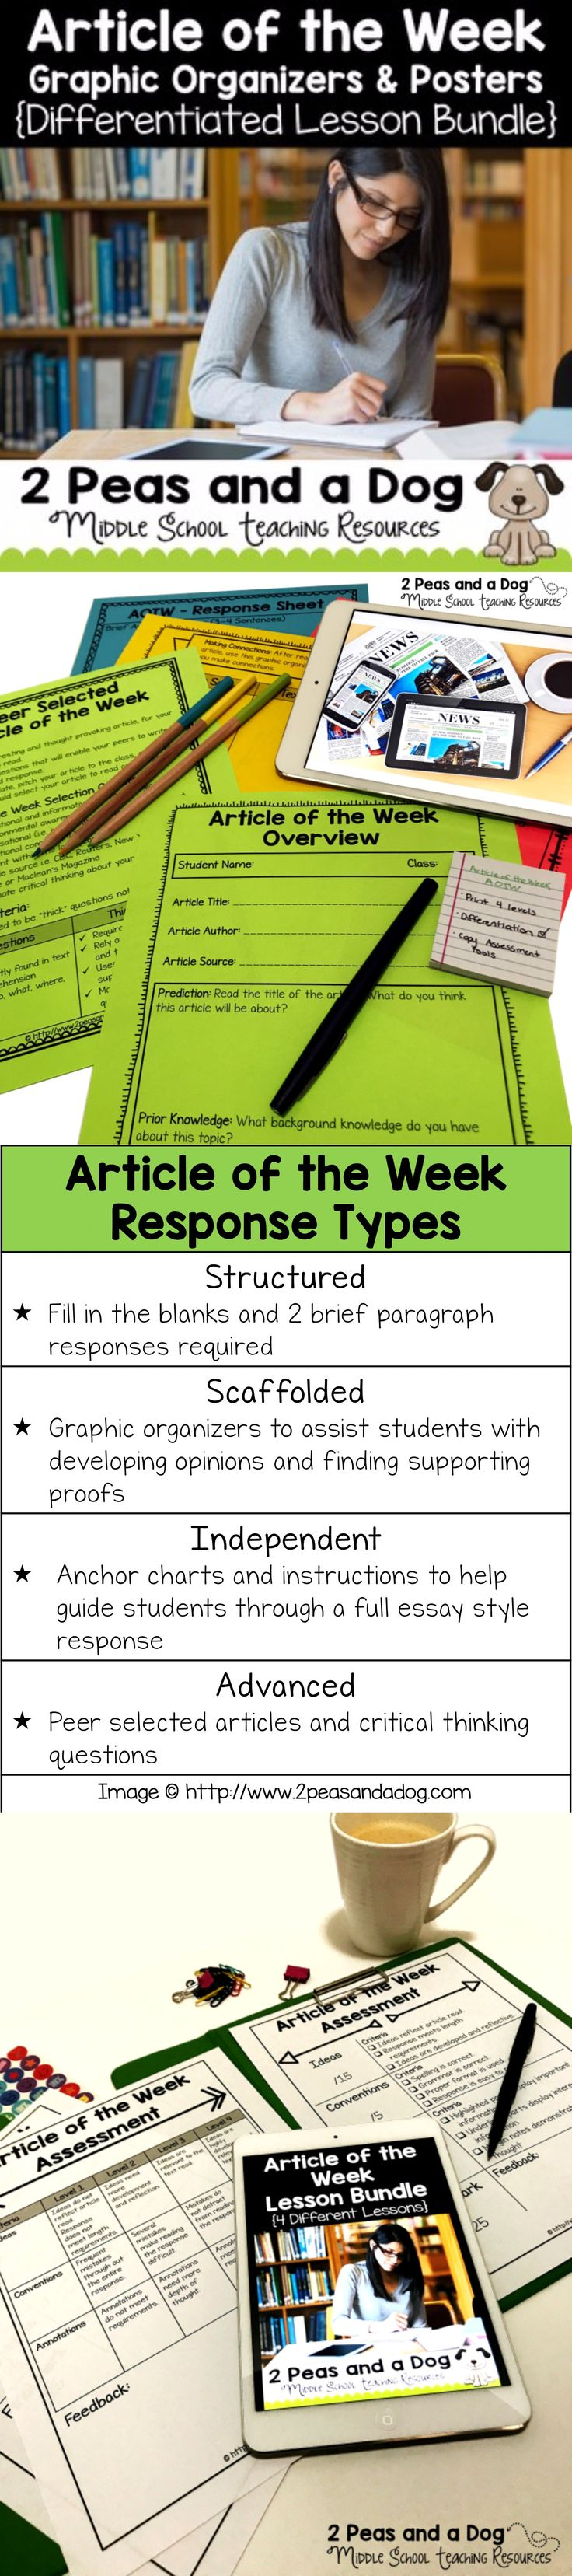 Help your students purposely engage with non-fiction texts using this differentiated article of the week four lesson bundle. This no-prep, print and go resource can be used in any content area or English Language Arts classroom to help students gain background knowledge, practice their reading, writing and analysis skills as well as keep classroom engagement high. ($)